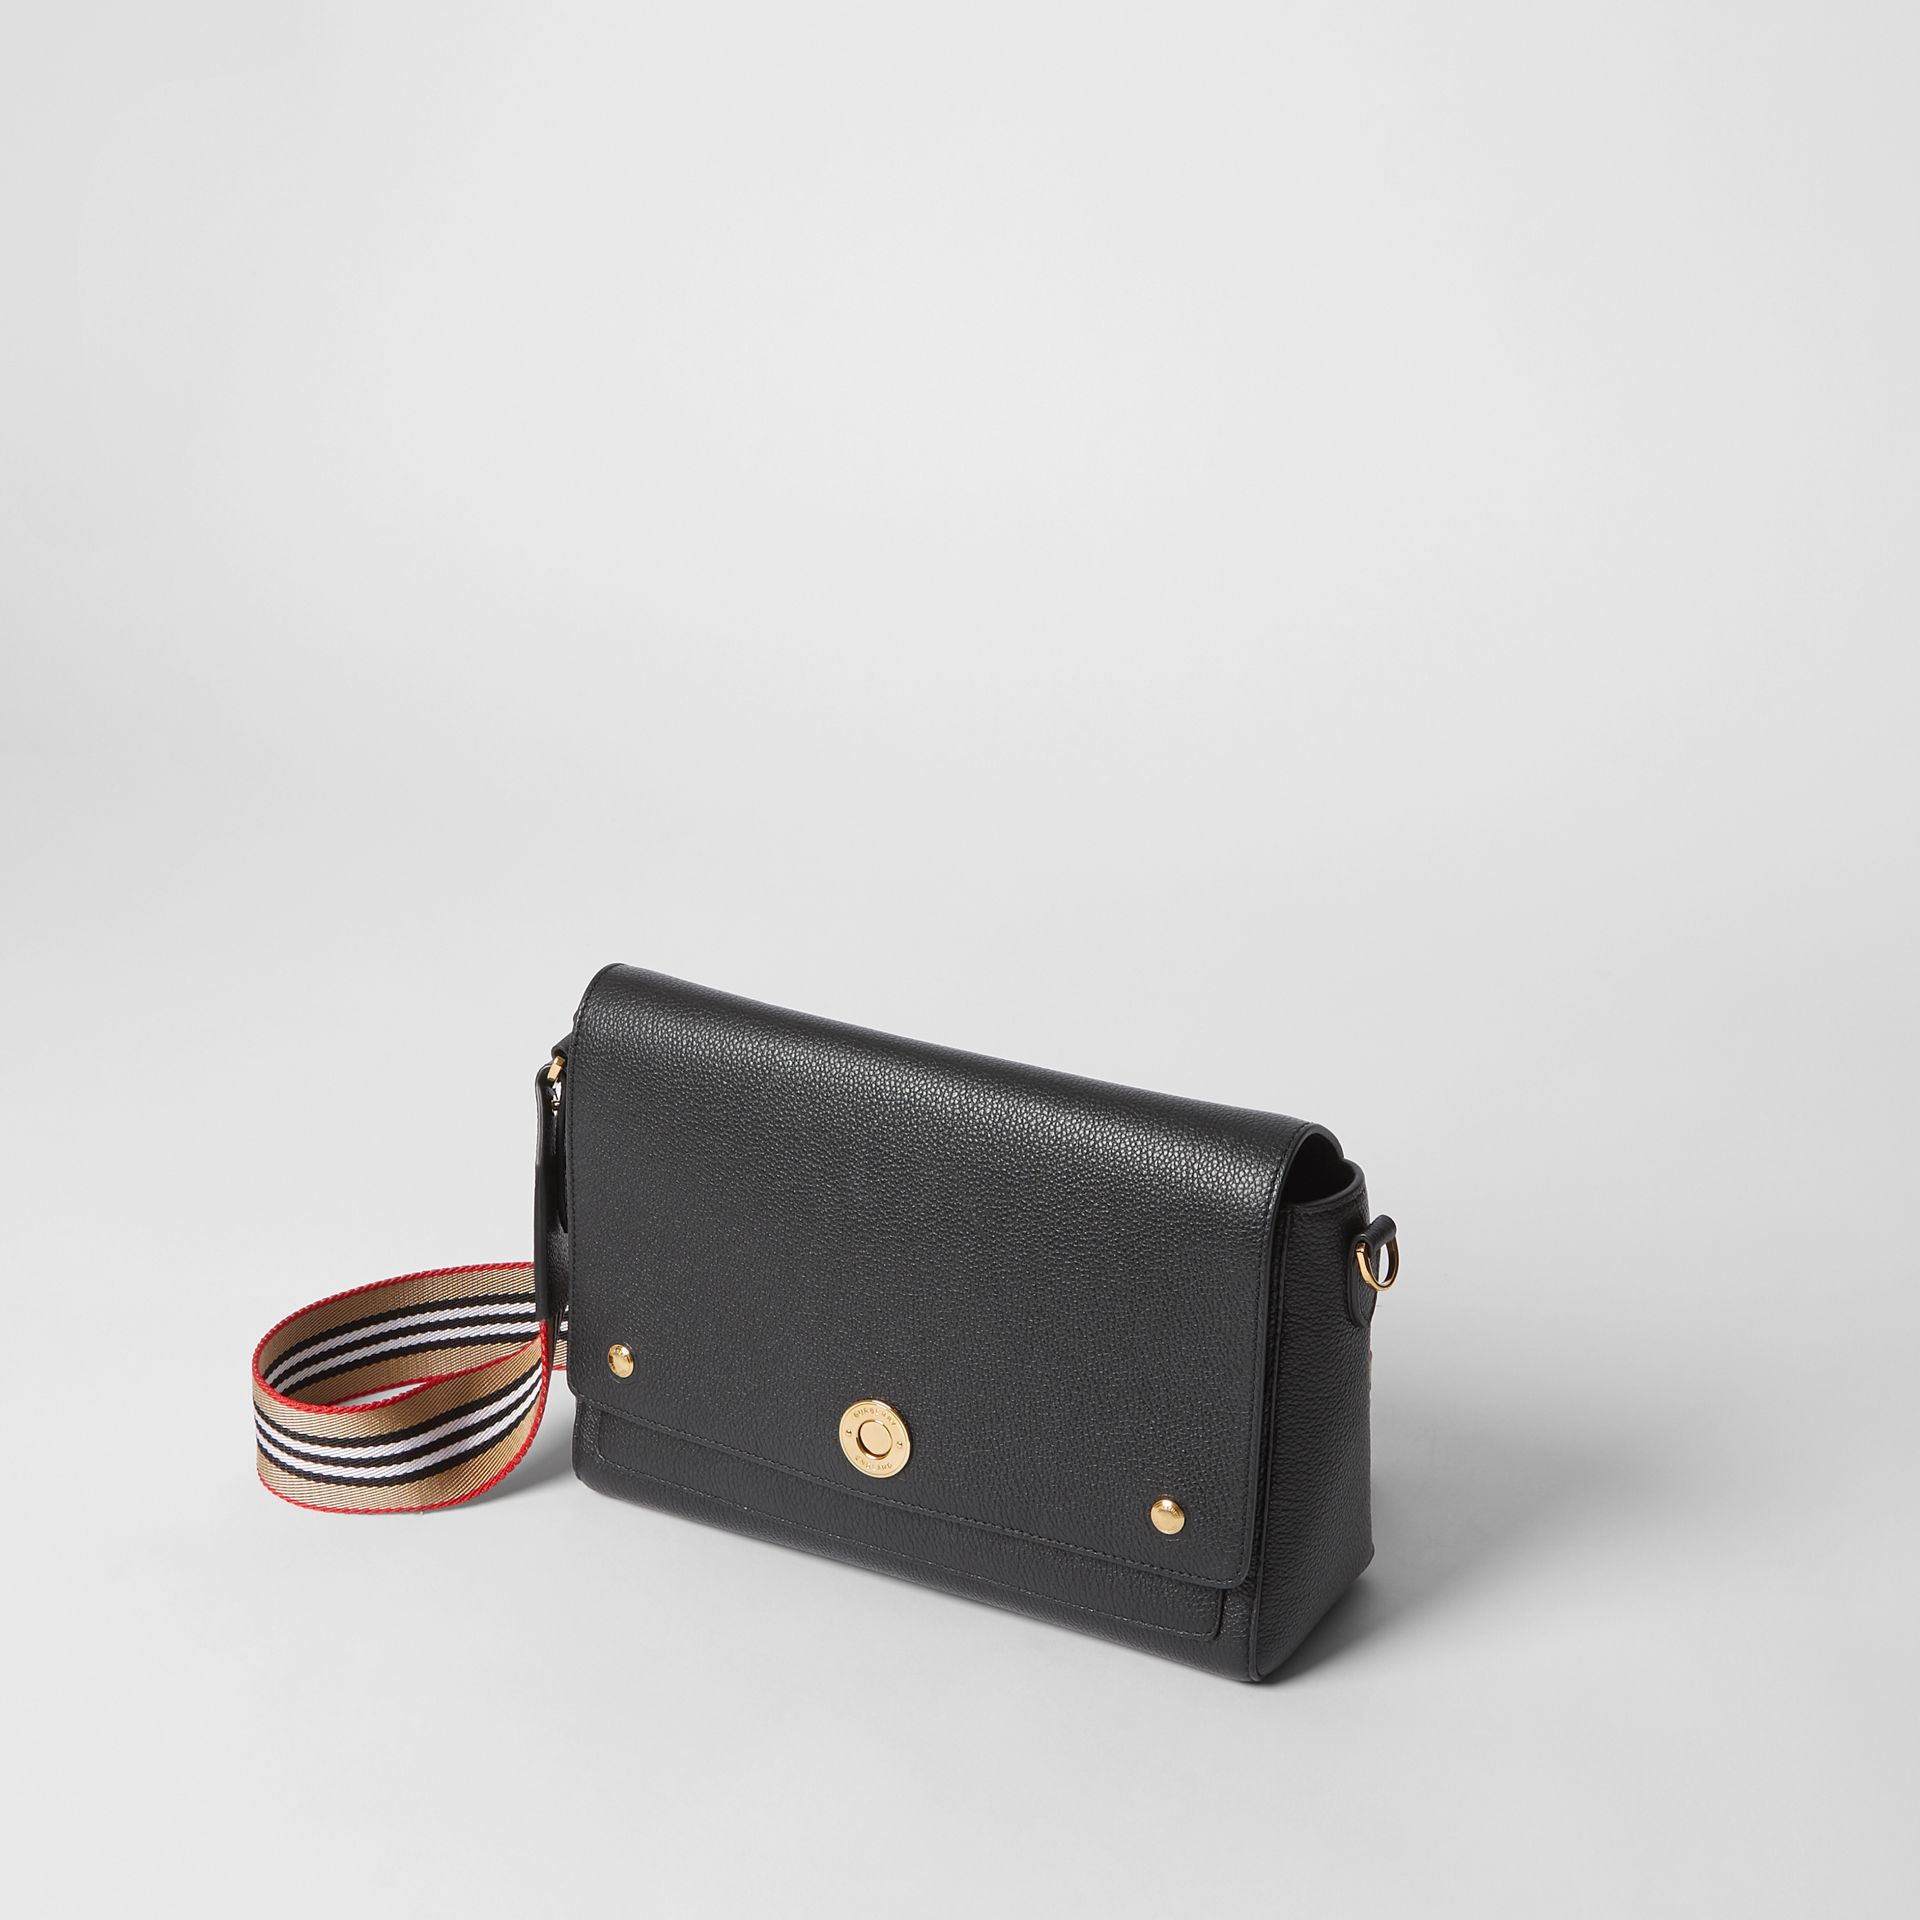 Grainy Leather Note Crossbody Bag in Black - Women | Burberry United Kingdom - gallery image 3